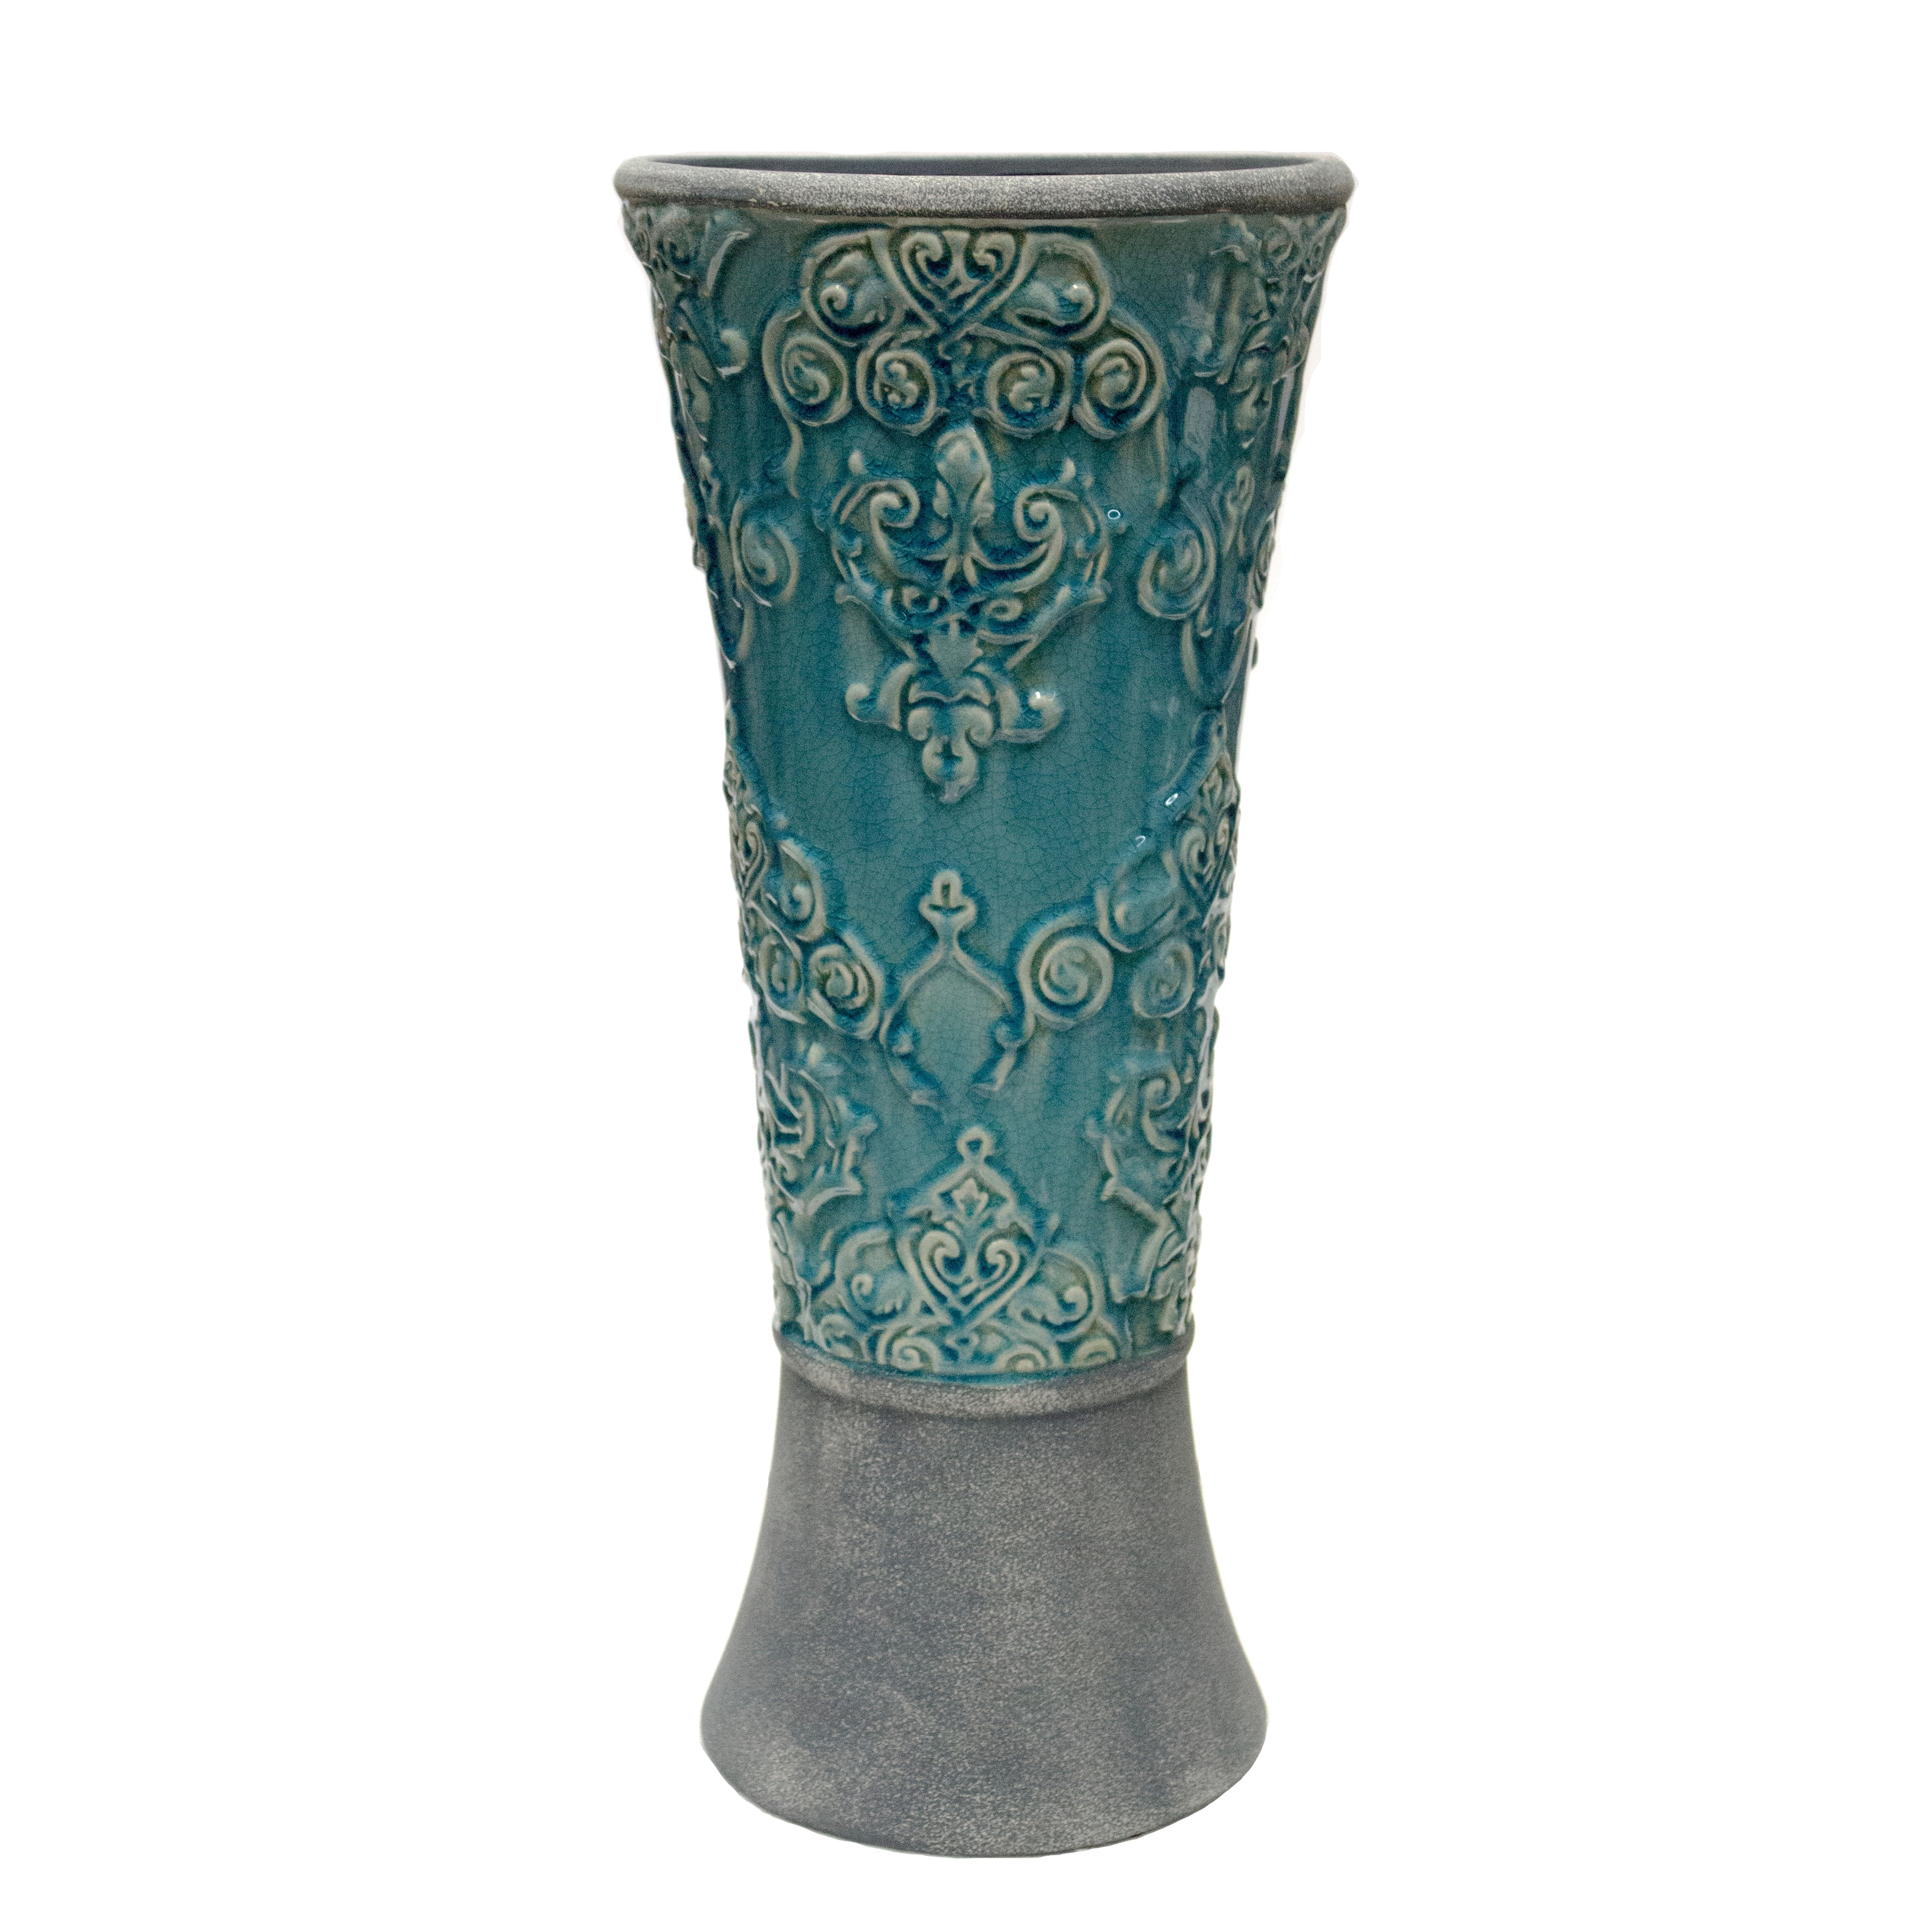 Dual Tone Ceramic Beaker Vase with Embossed Botanical Texture, Blue and Gray